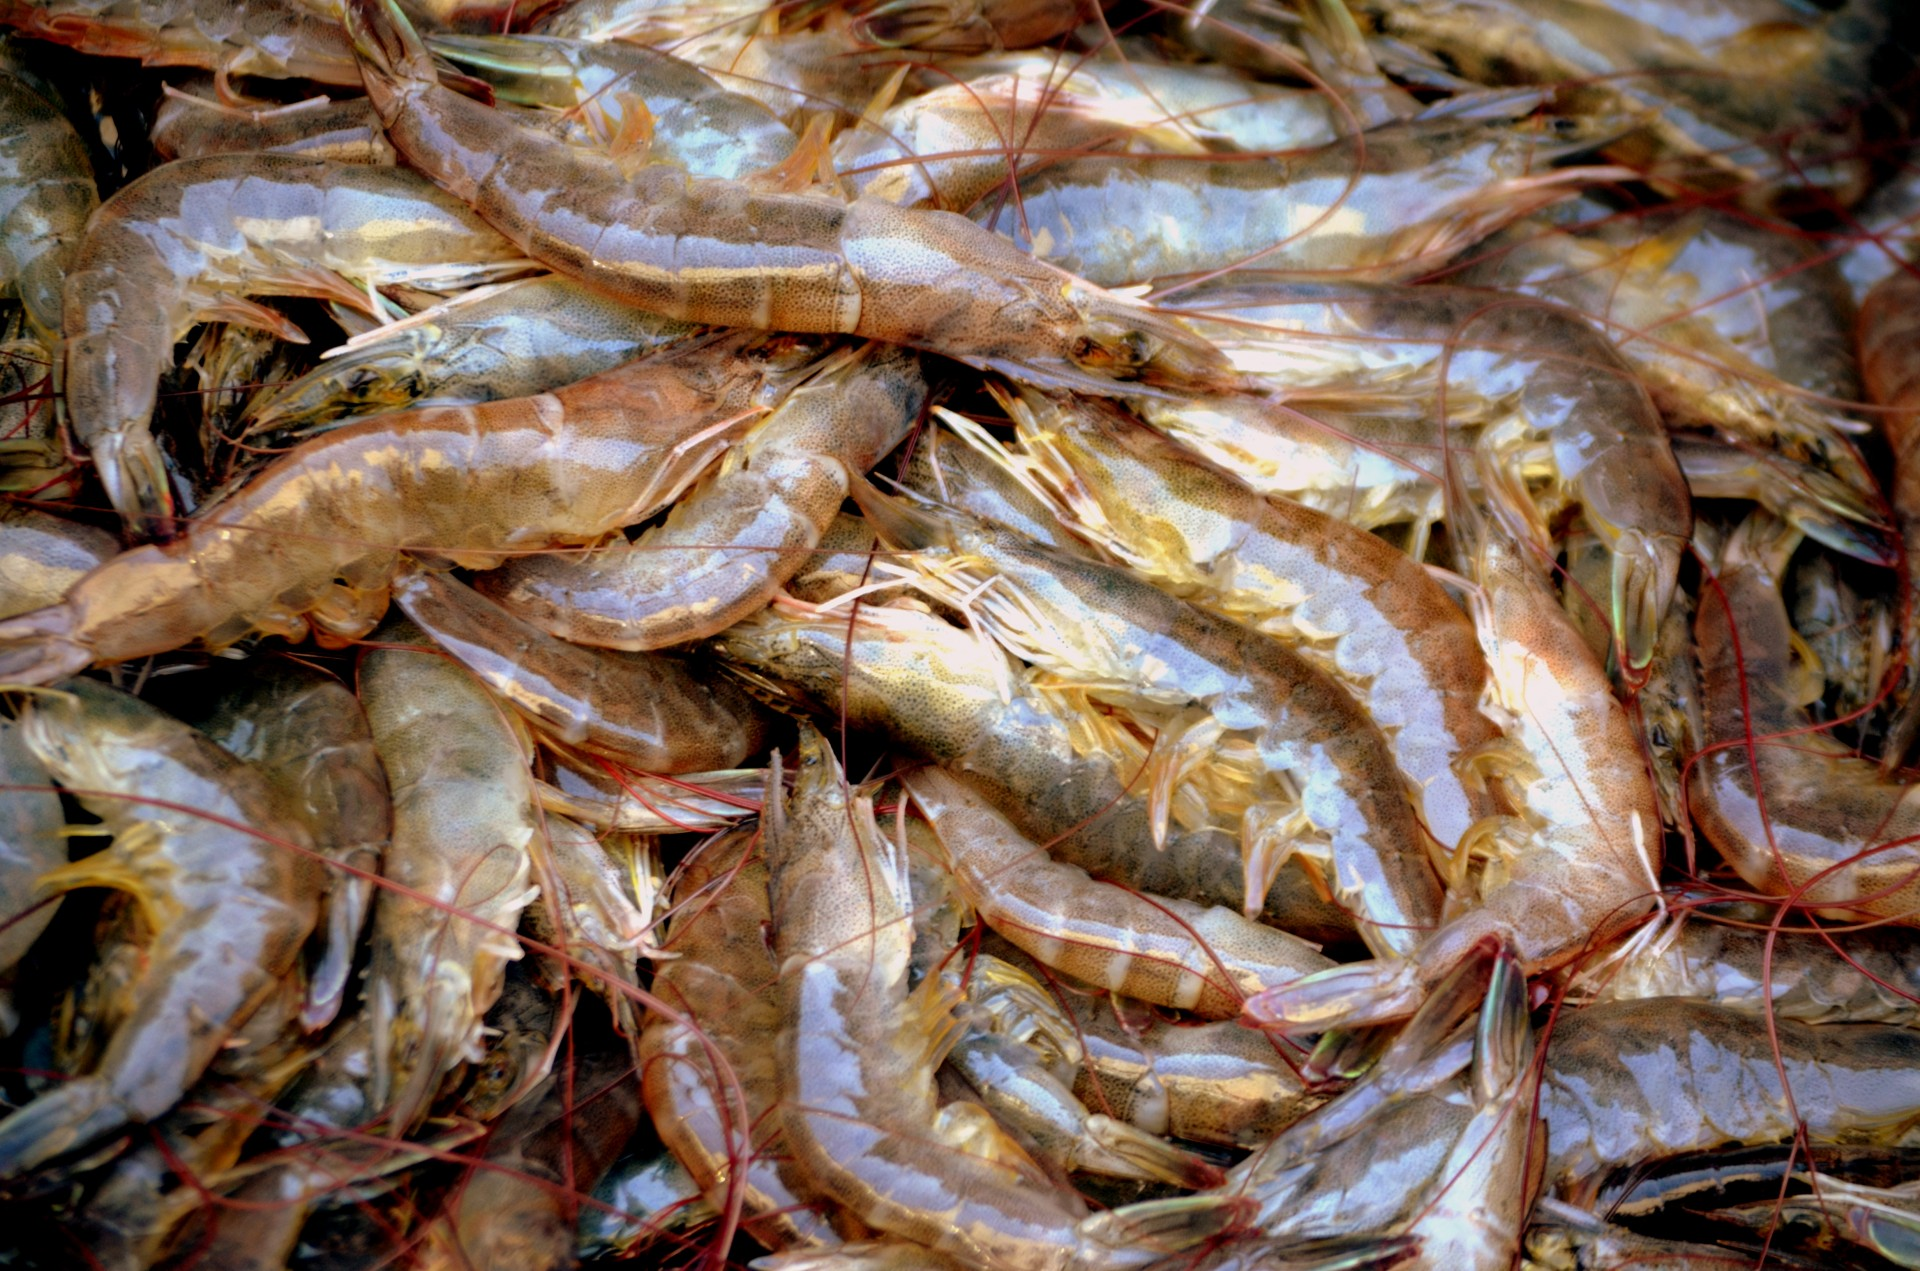 Why You Should Never Buy Walmart Or Costco Shrimp